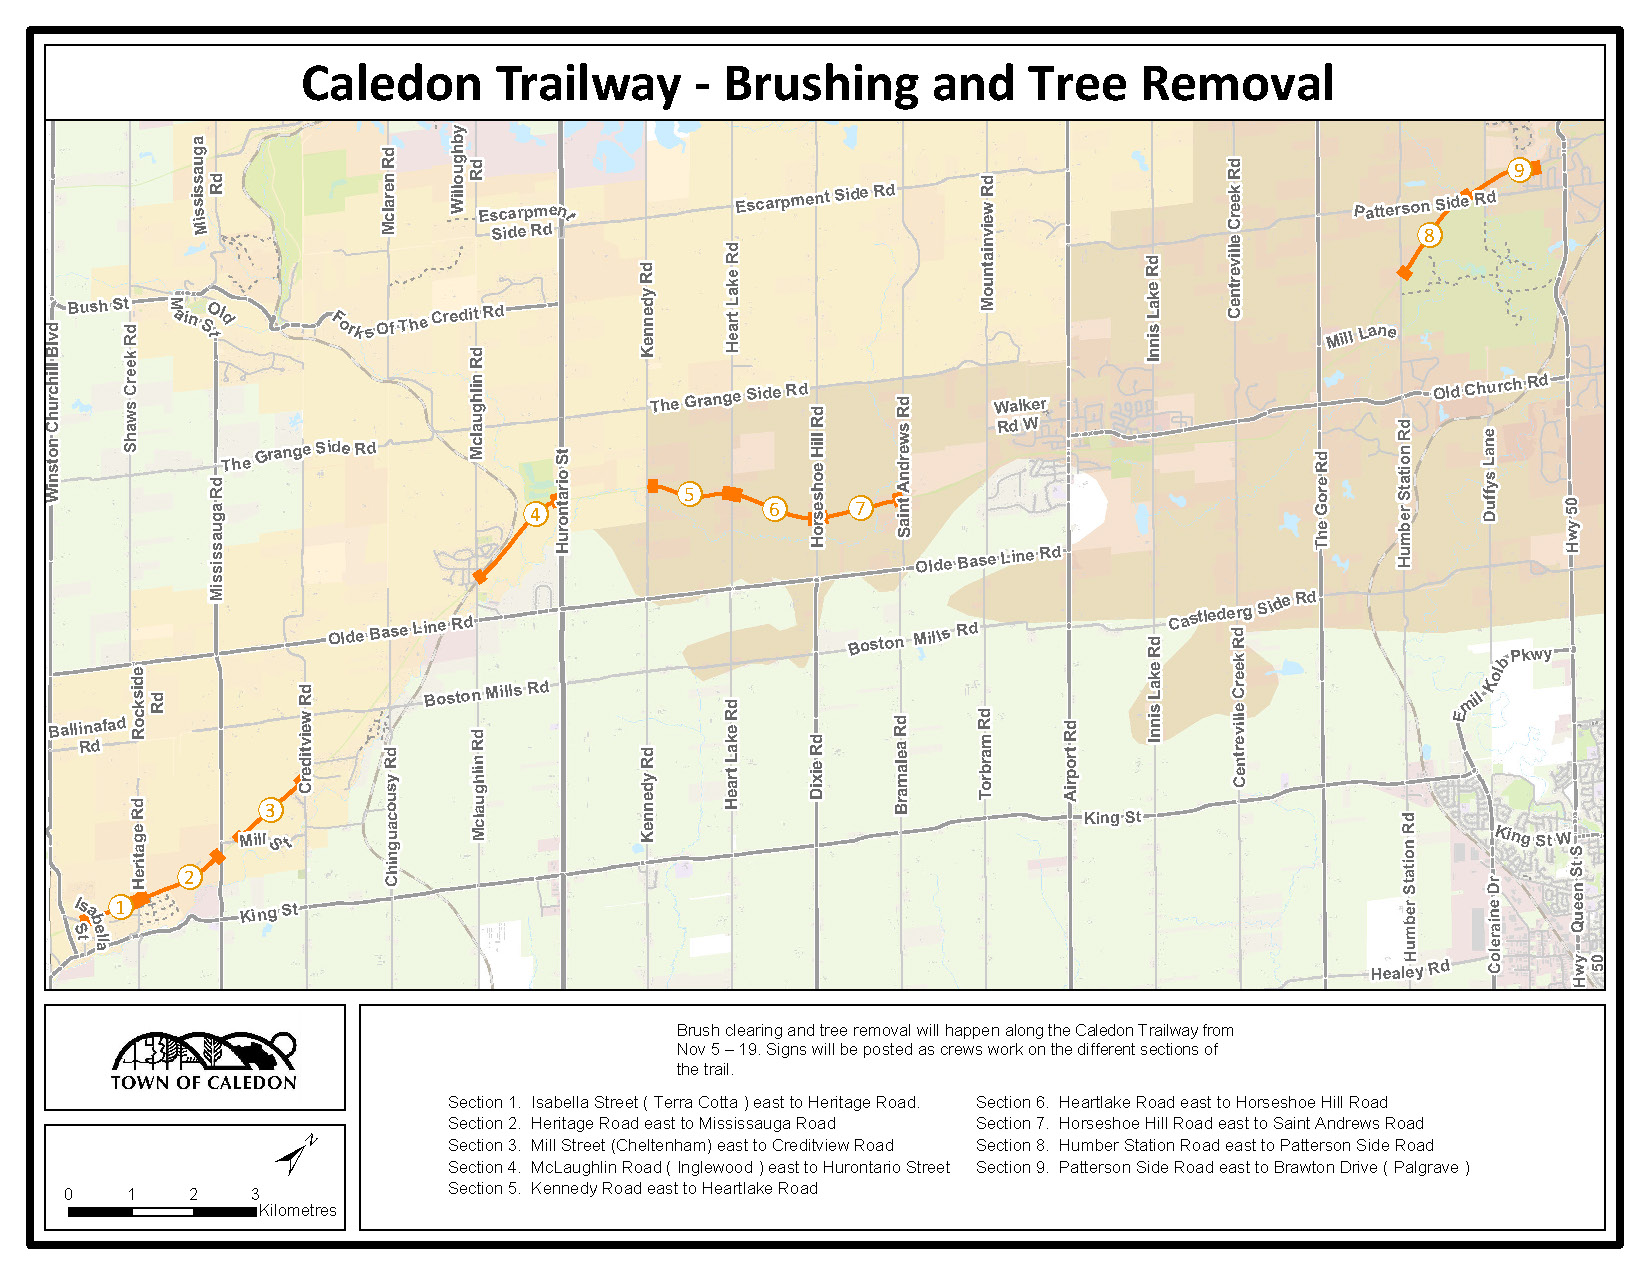 Caledon Trailway brush clearing and tree removal